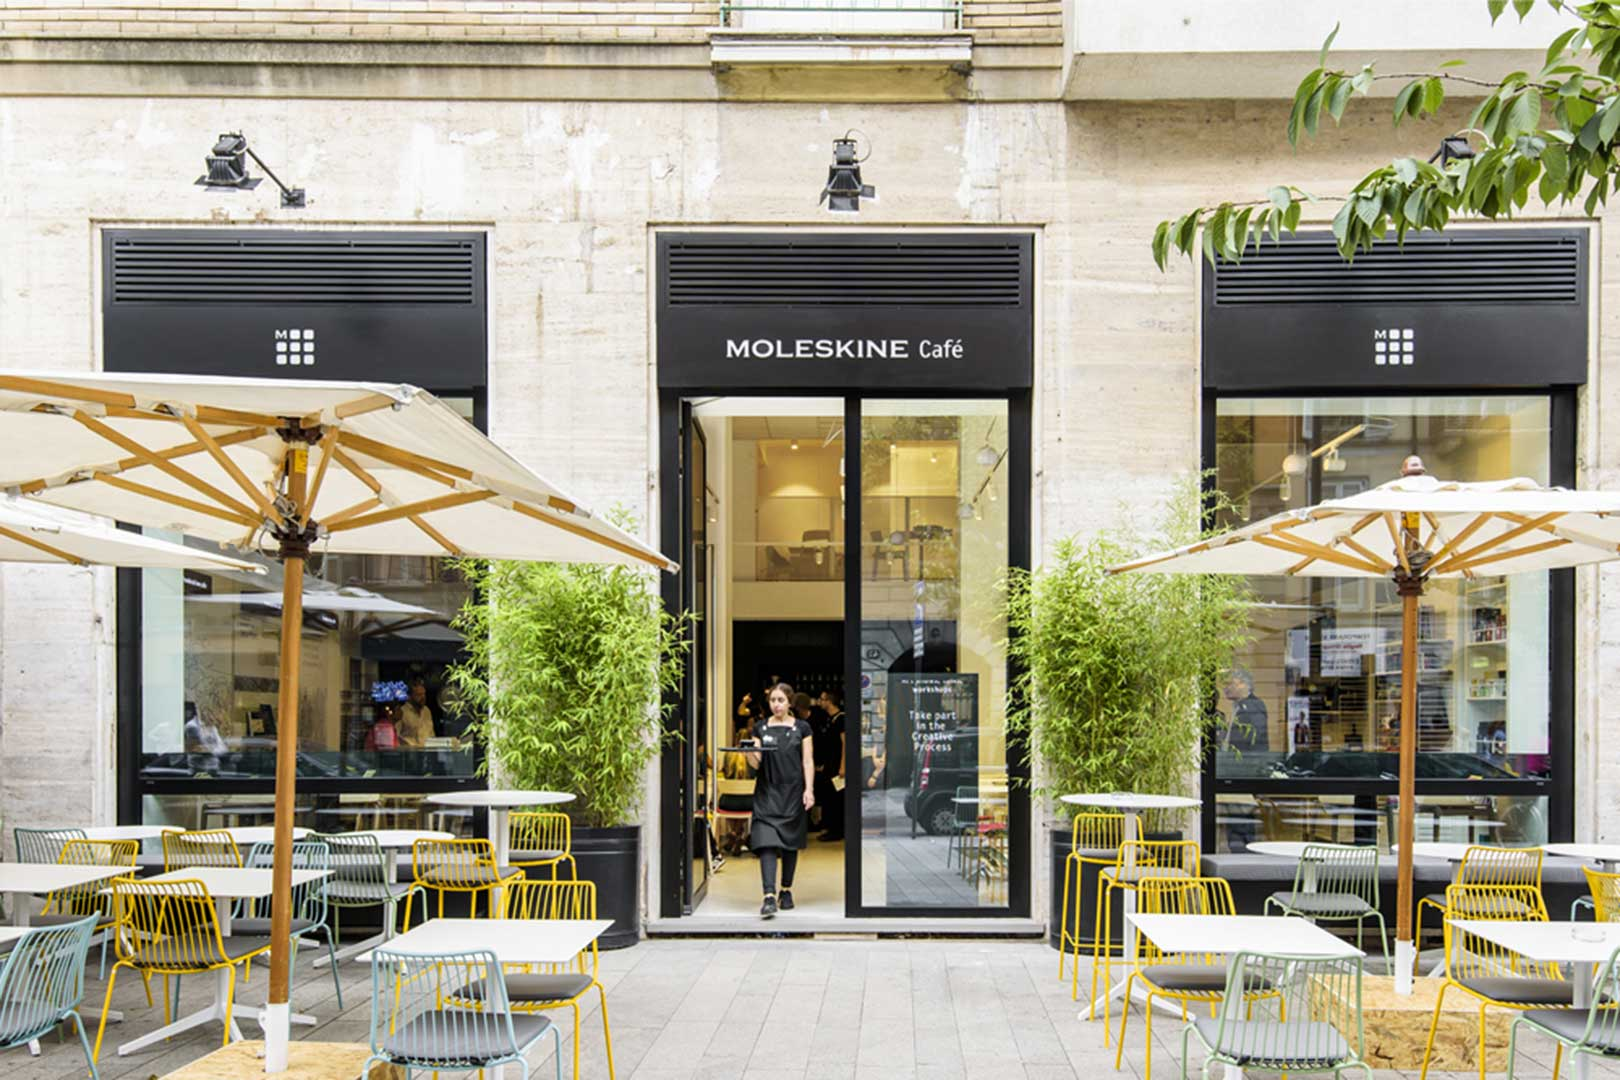 Moleskine Cafe Entrance